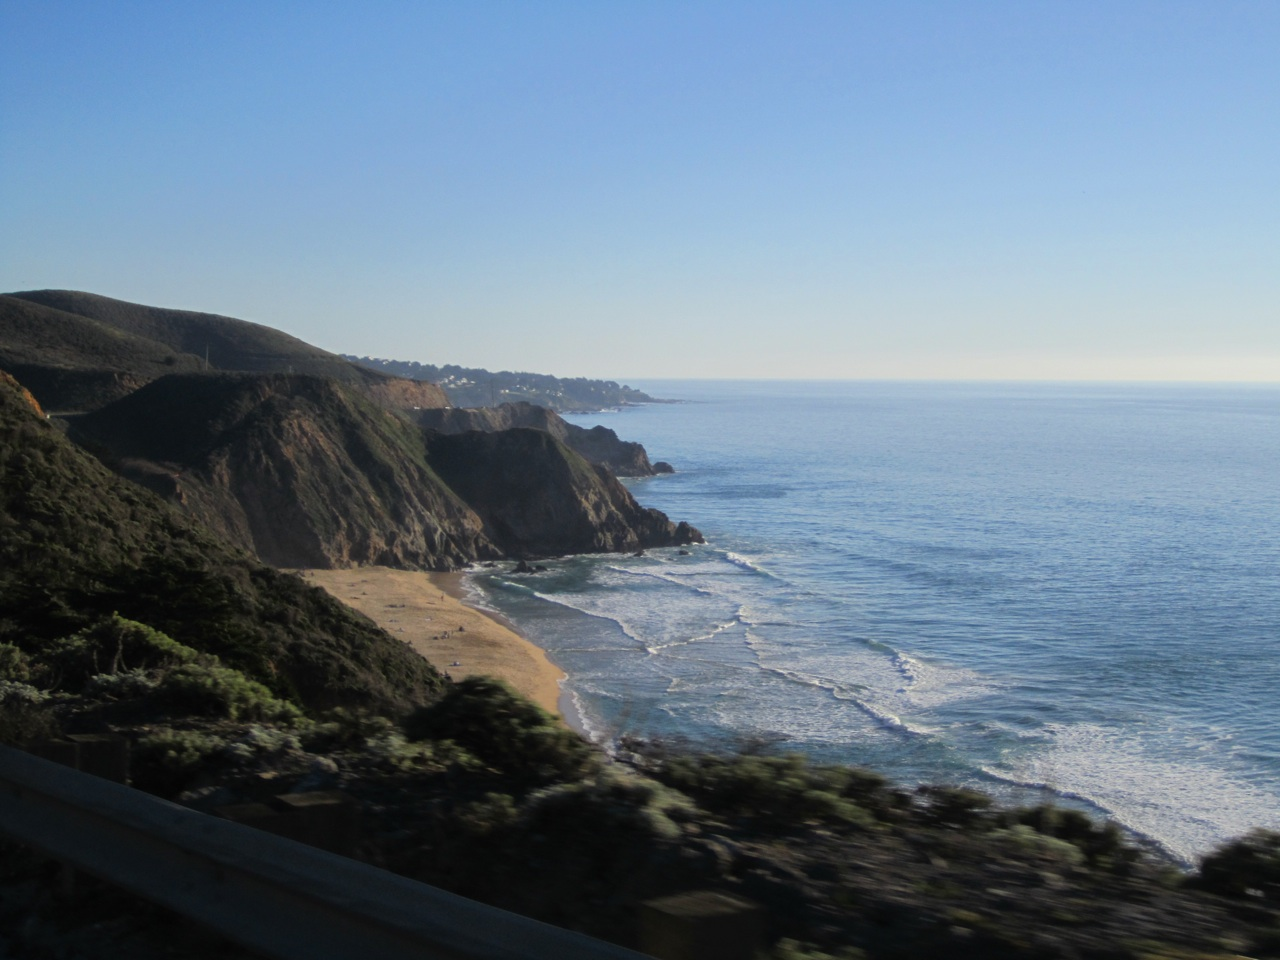 A Shot Outside Our Car Window On Highway 1, While David Is Traveling 40 MPH (Or Their Abouts)